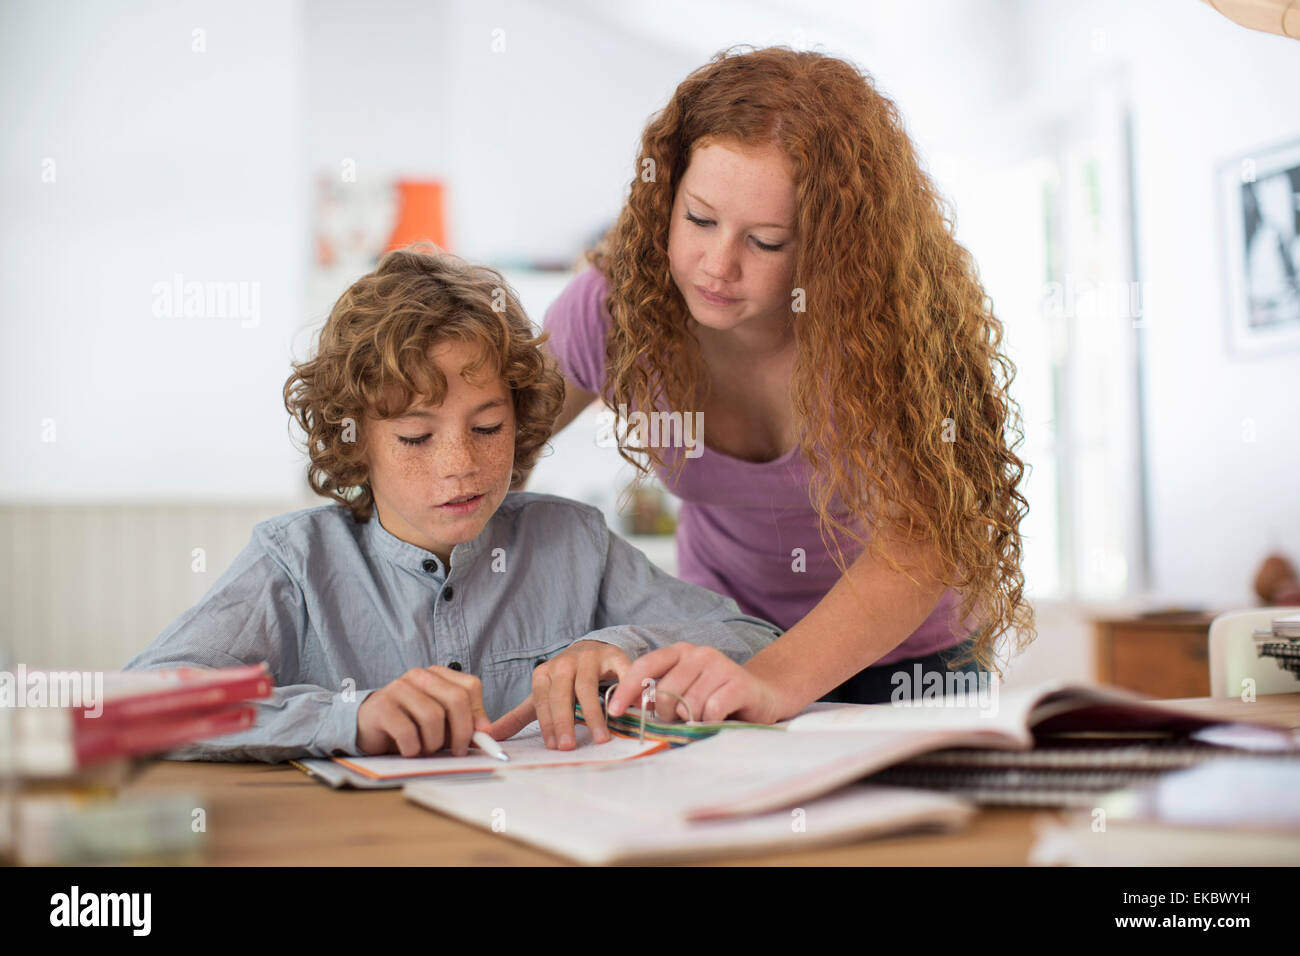 Siblings studying together - Stock Image